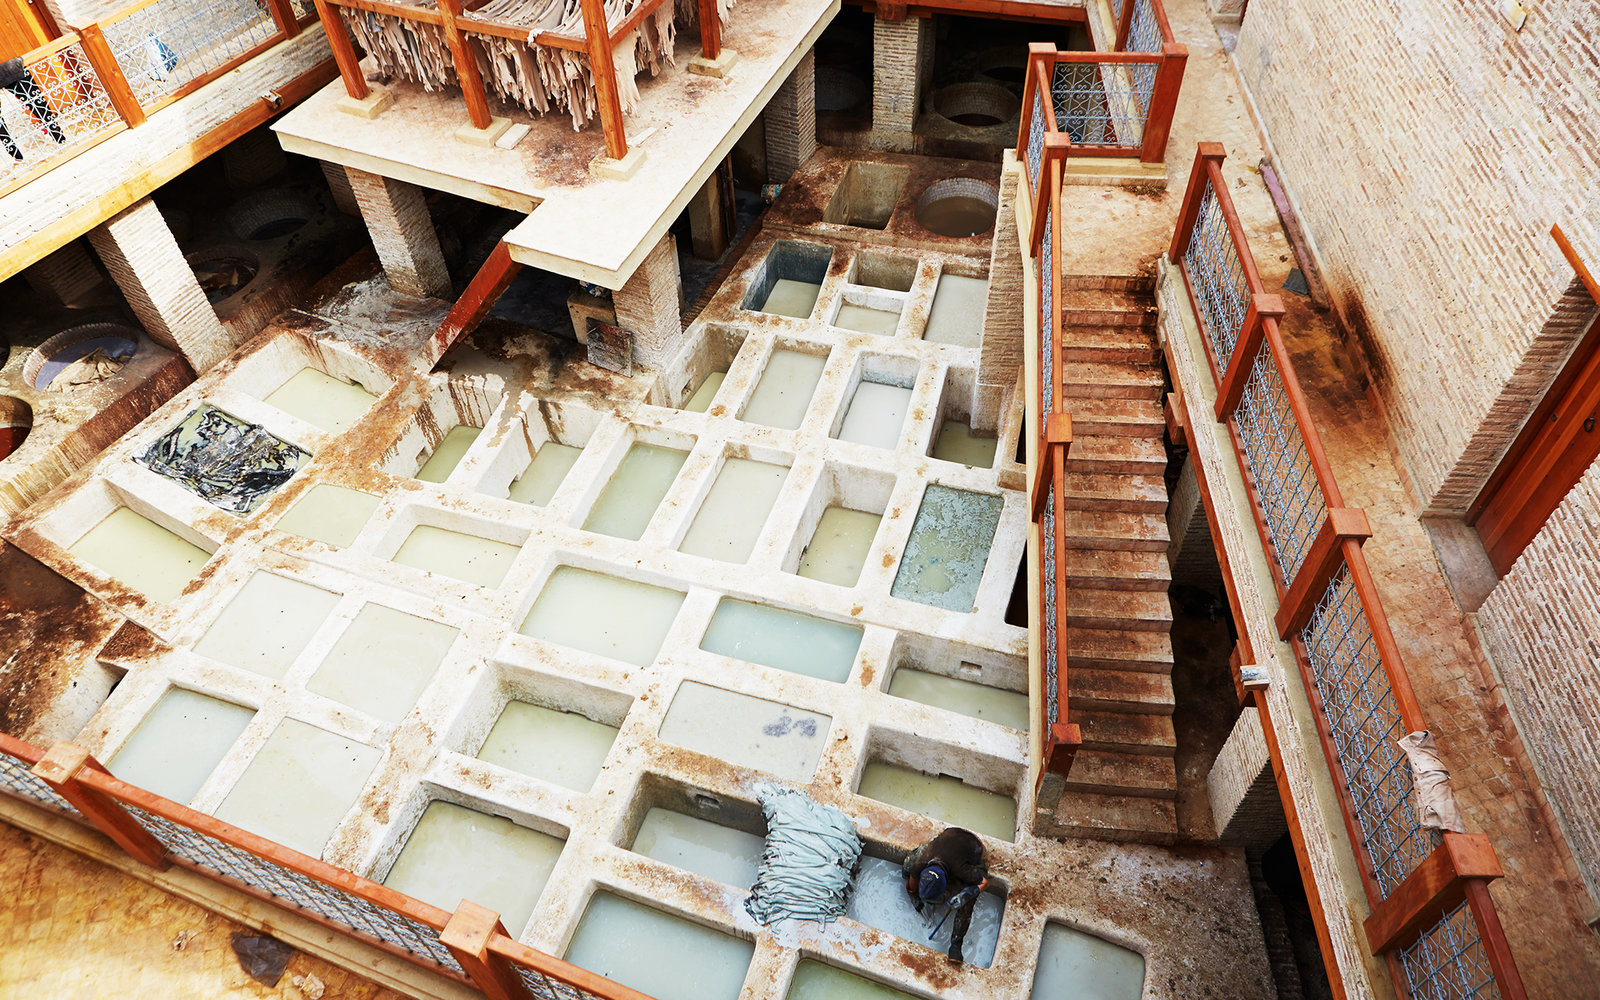 Tannery in Fez Morocco